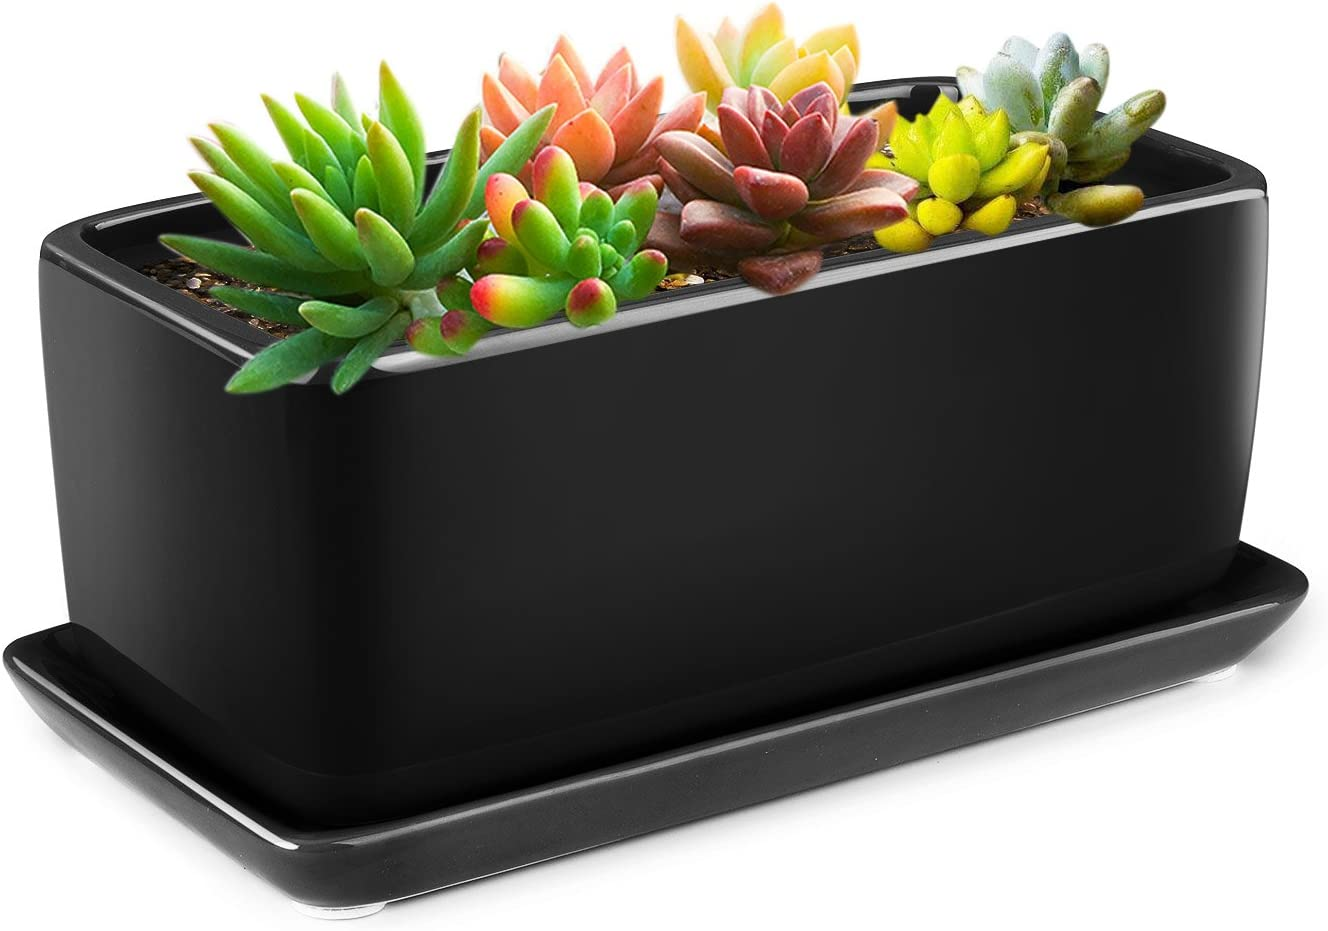 Flexzion 10 Inch Rectangular Ceramic Succulent Planter Pot - Cactus Herb Flower Container Window Box Holder with Removable Drip Tray Base for Tabletop Desktop Indoor Outdoor Home Office Garden (Black)